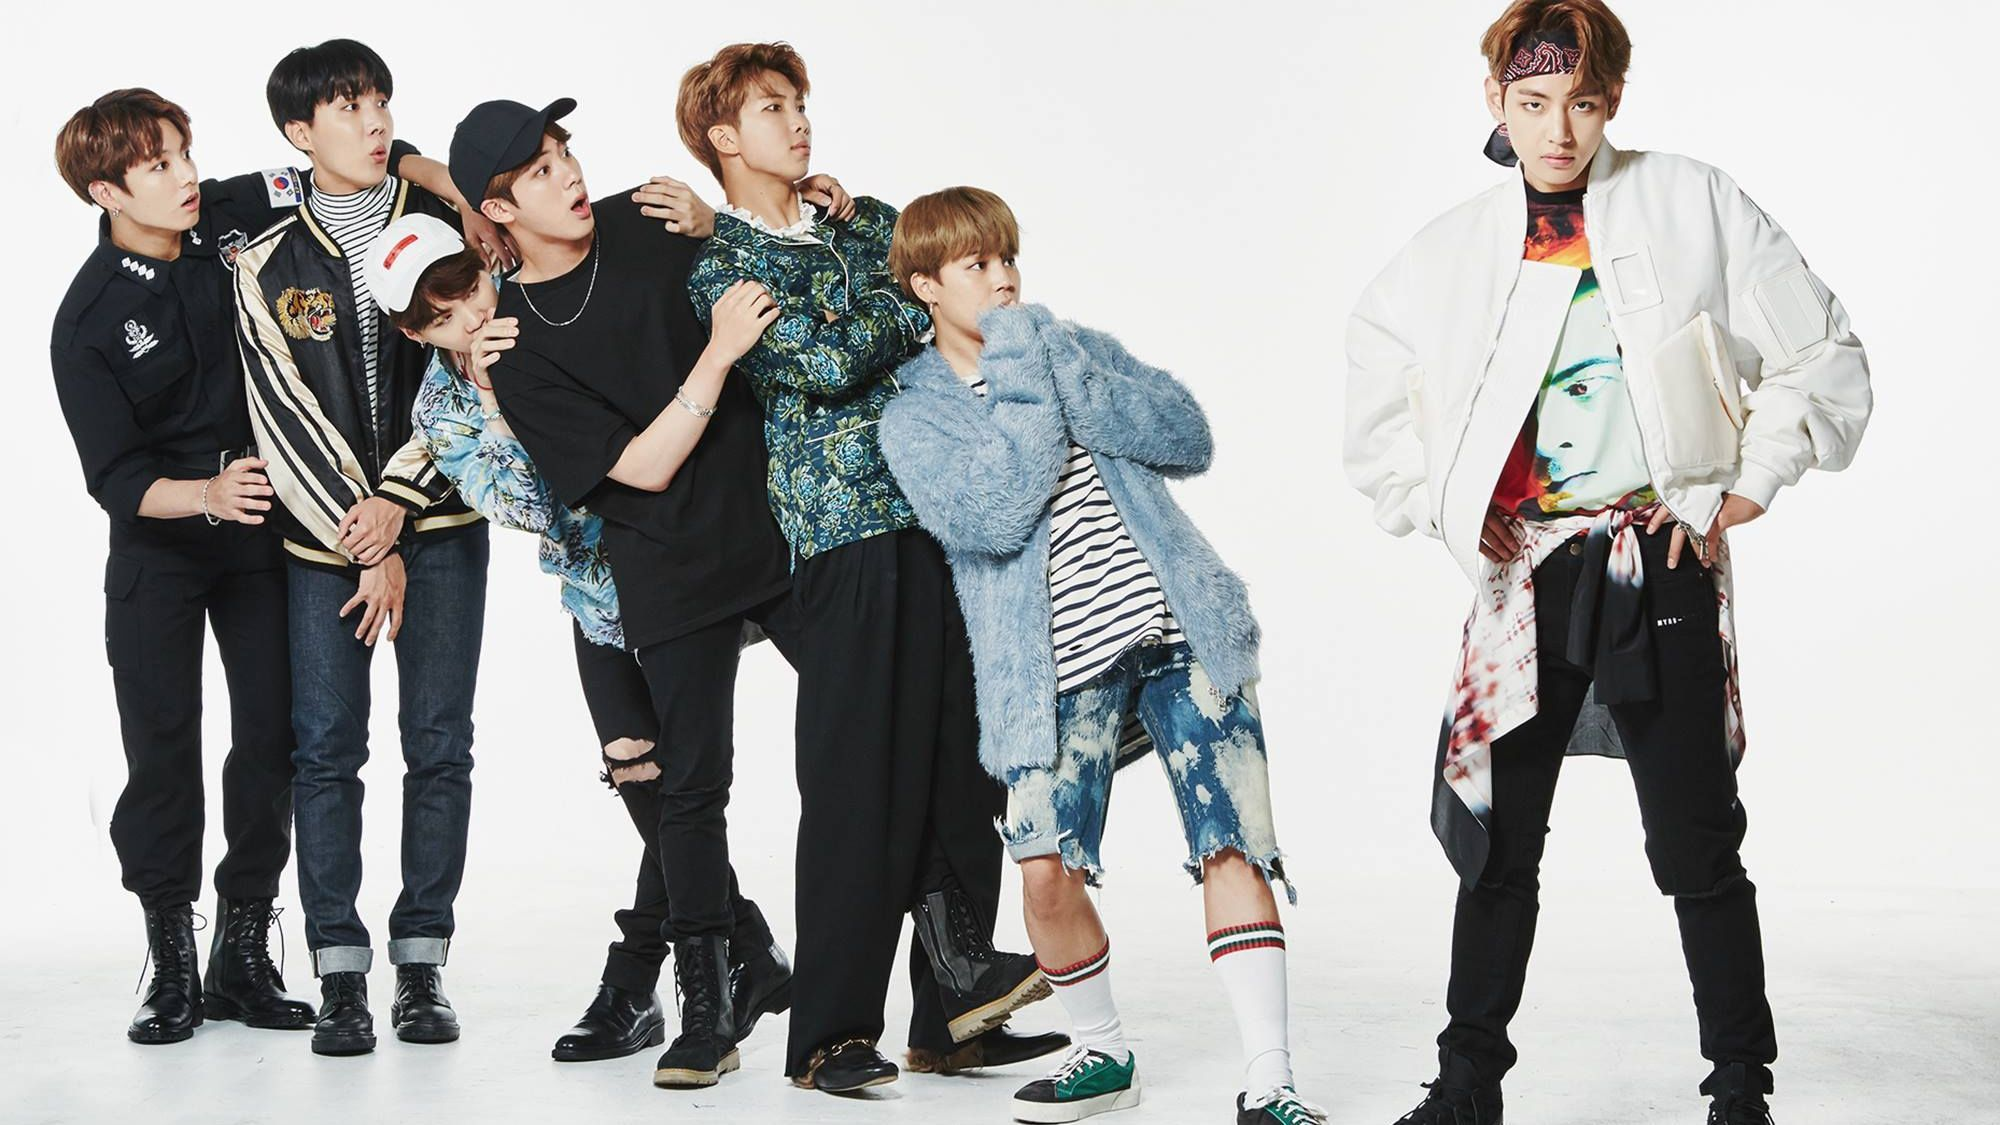 Bts Cute Desktop Wallpapers On Wallpaperdog This season of @bts_twt bon voyage is going to be something special. bts cute desktop wallpapers on wallpaperdog